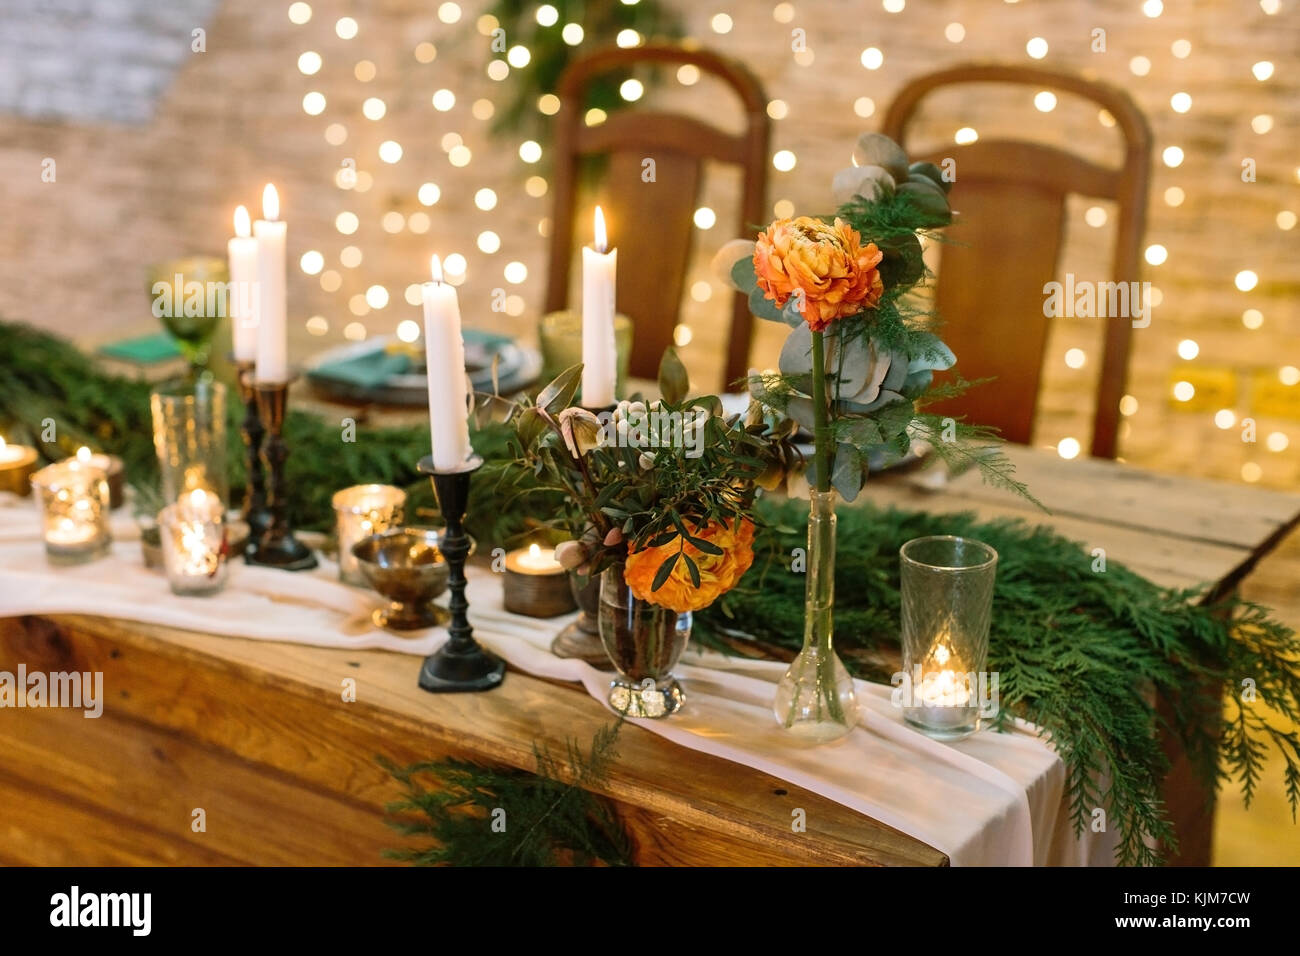 christmas, celebration, design concept. close up of delicate flower, bud of rose in tender orange colour, it is - Stock Image